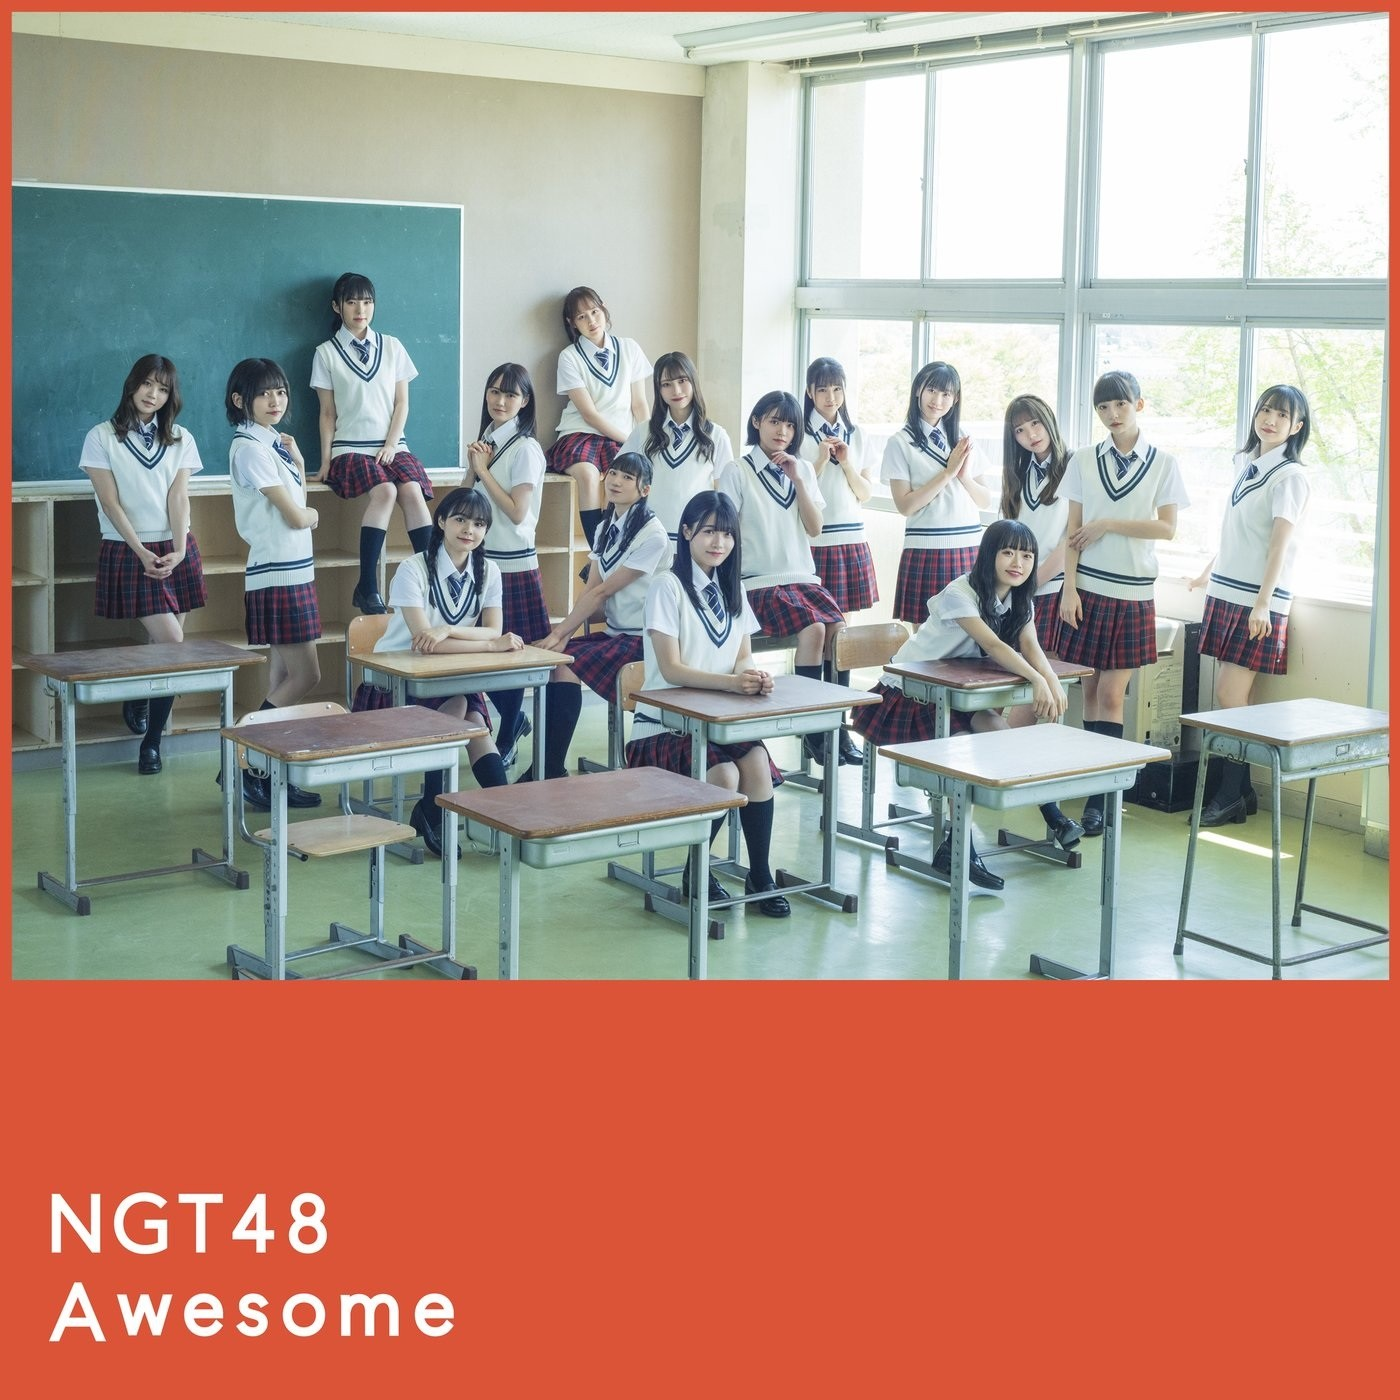 [Album] NGT48 – Awesome (Pre-release ver.) [FLAC + MP3 320 / WEB] [2021.06.23]